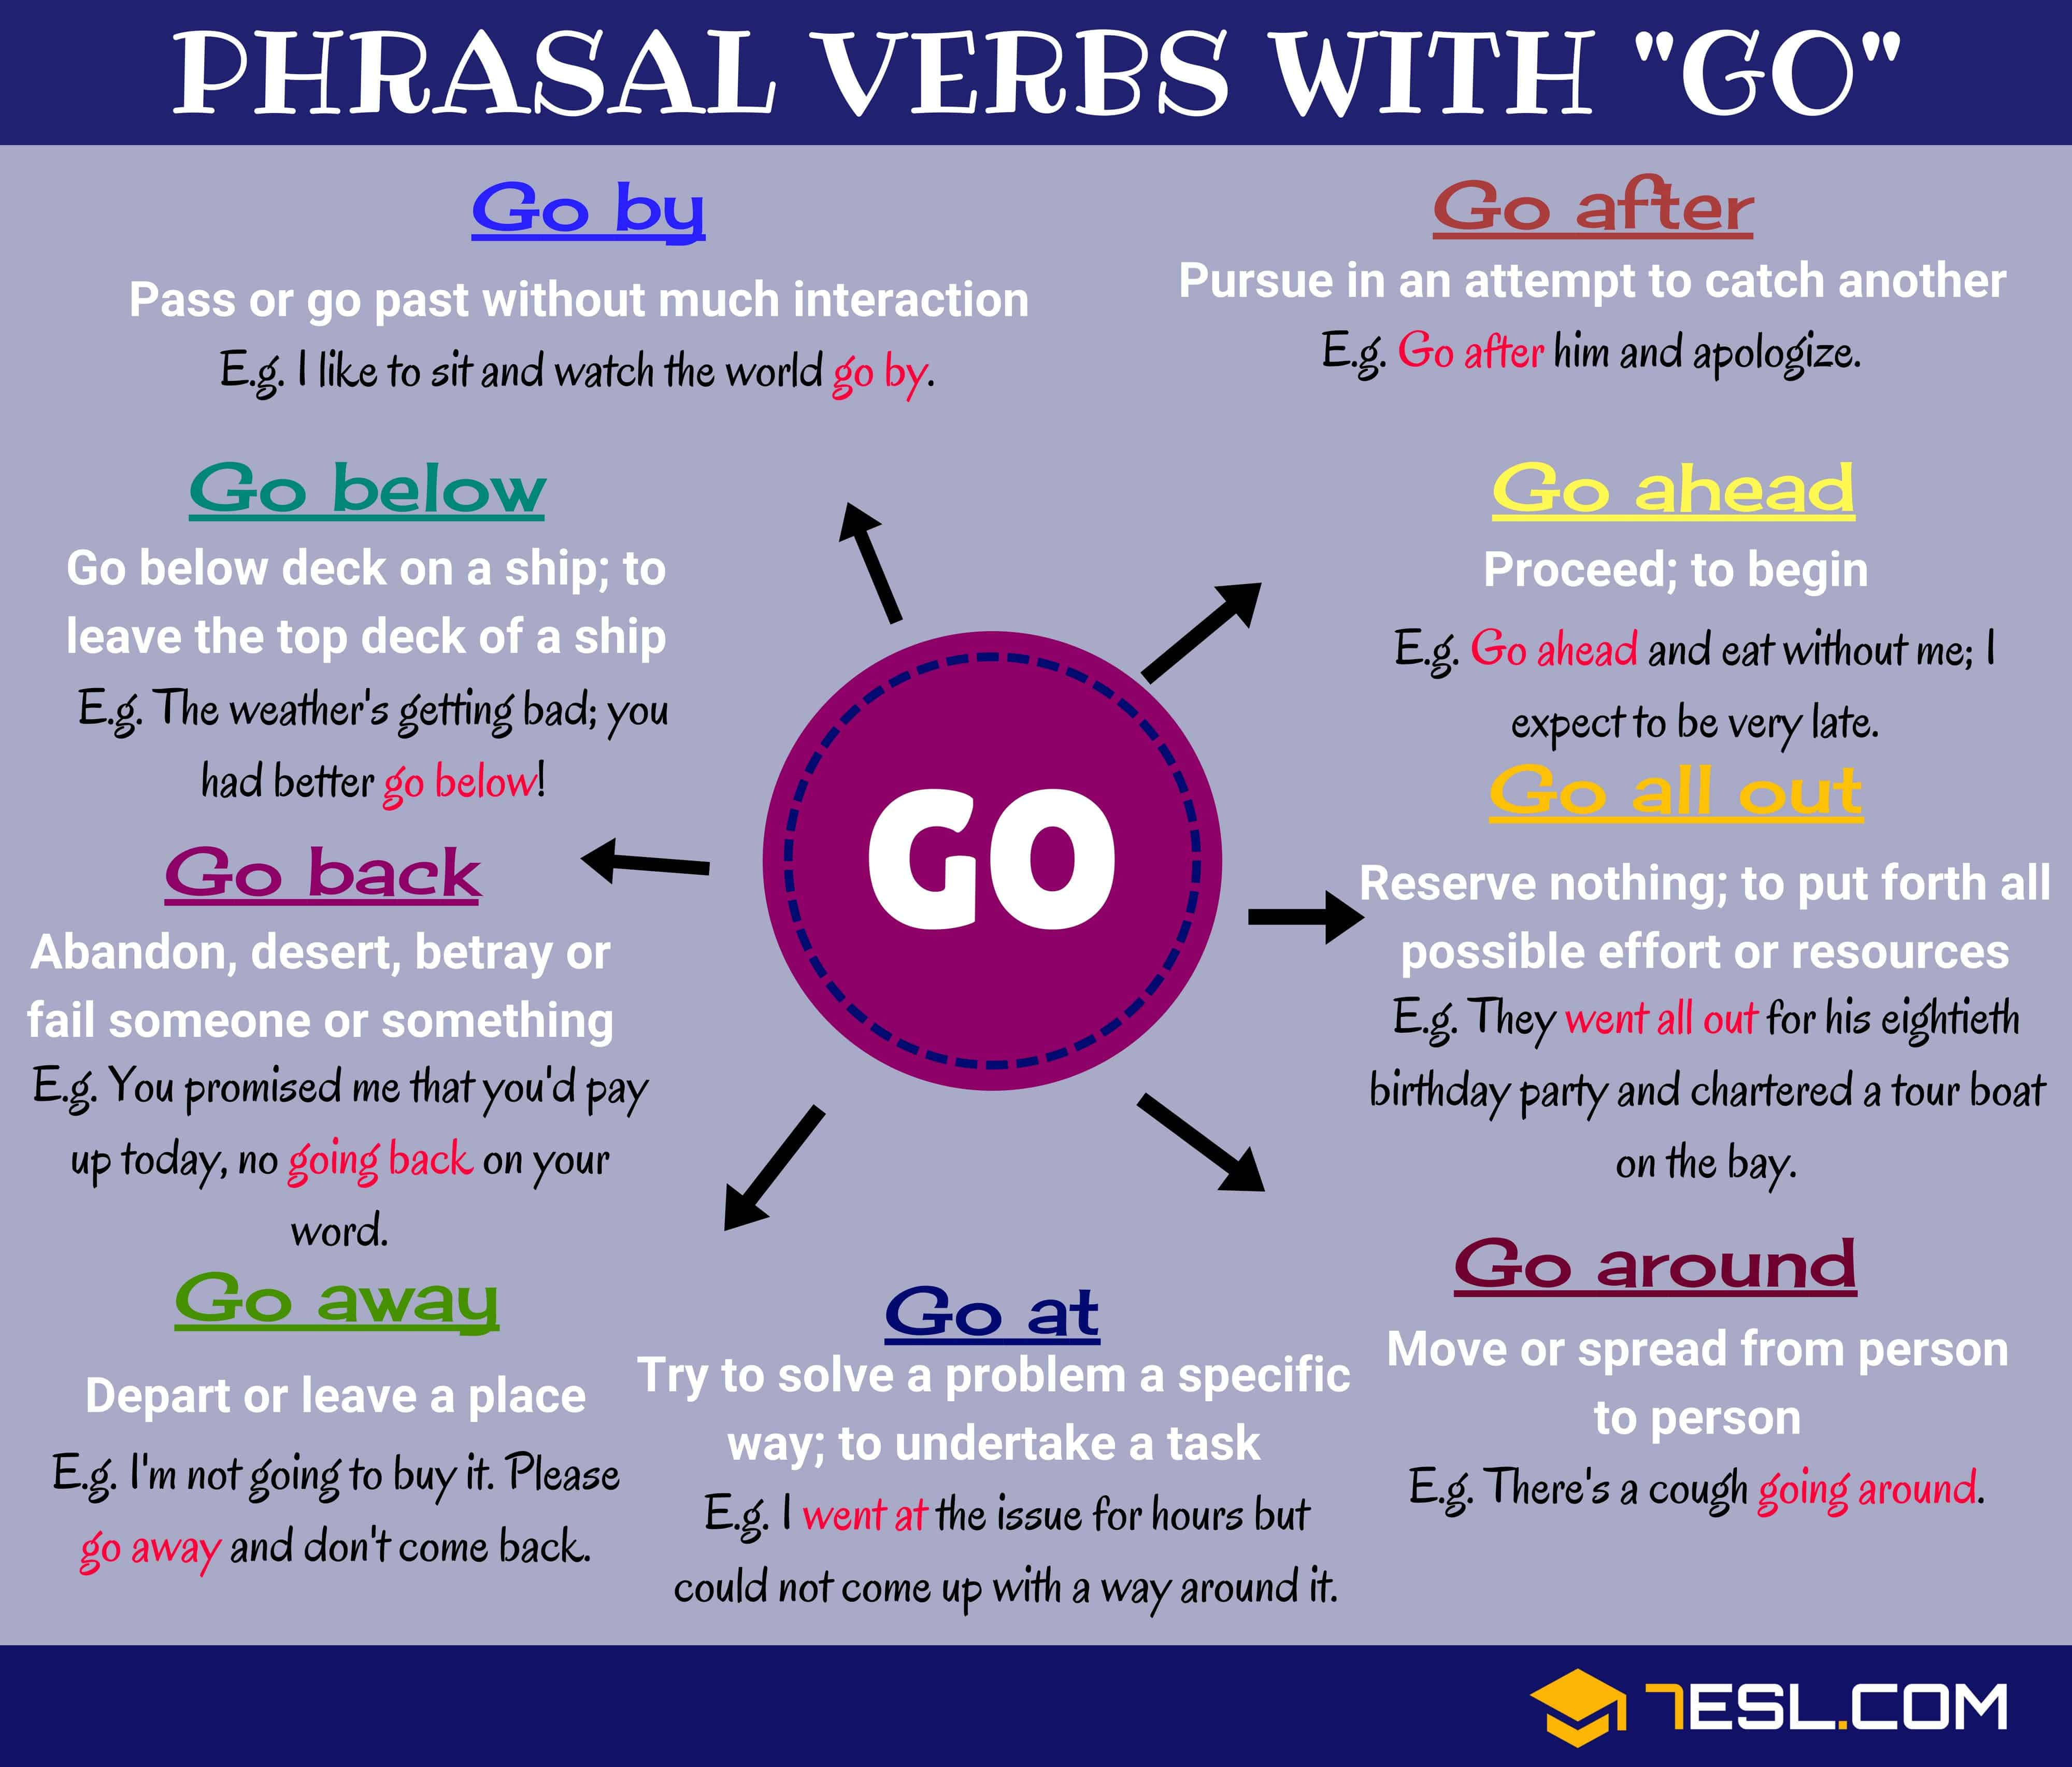 To go on phrasal verb